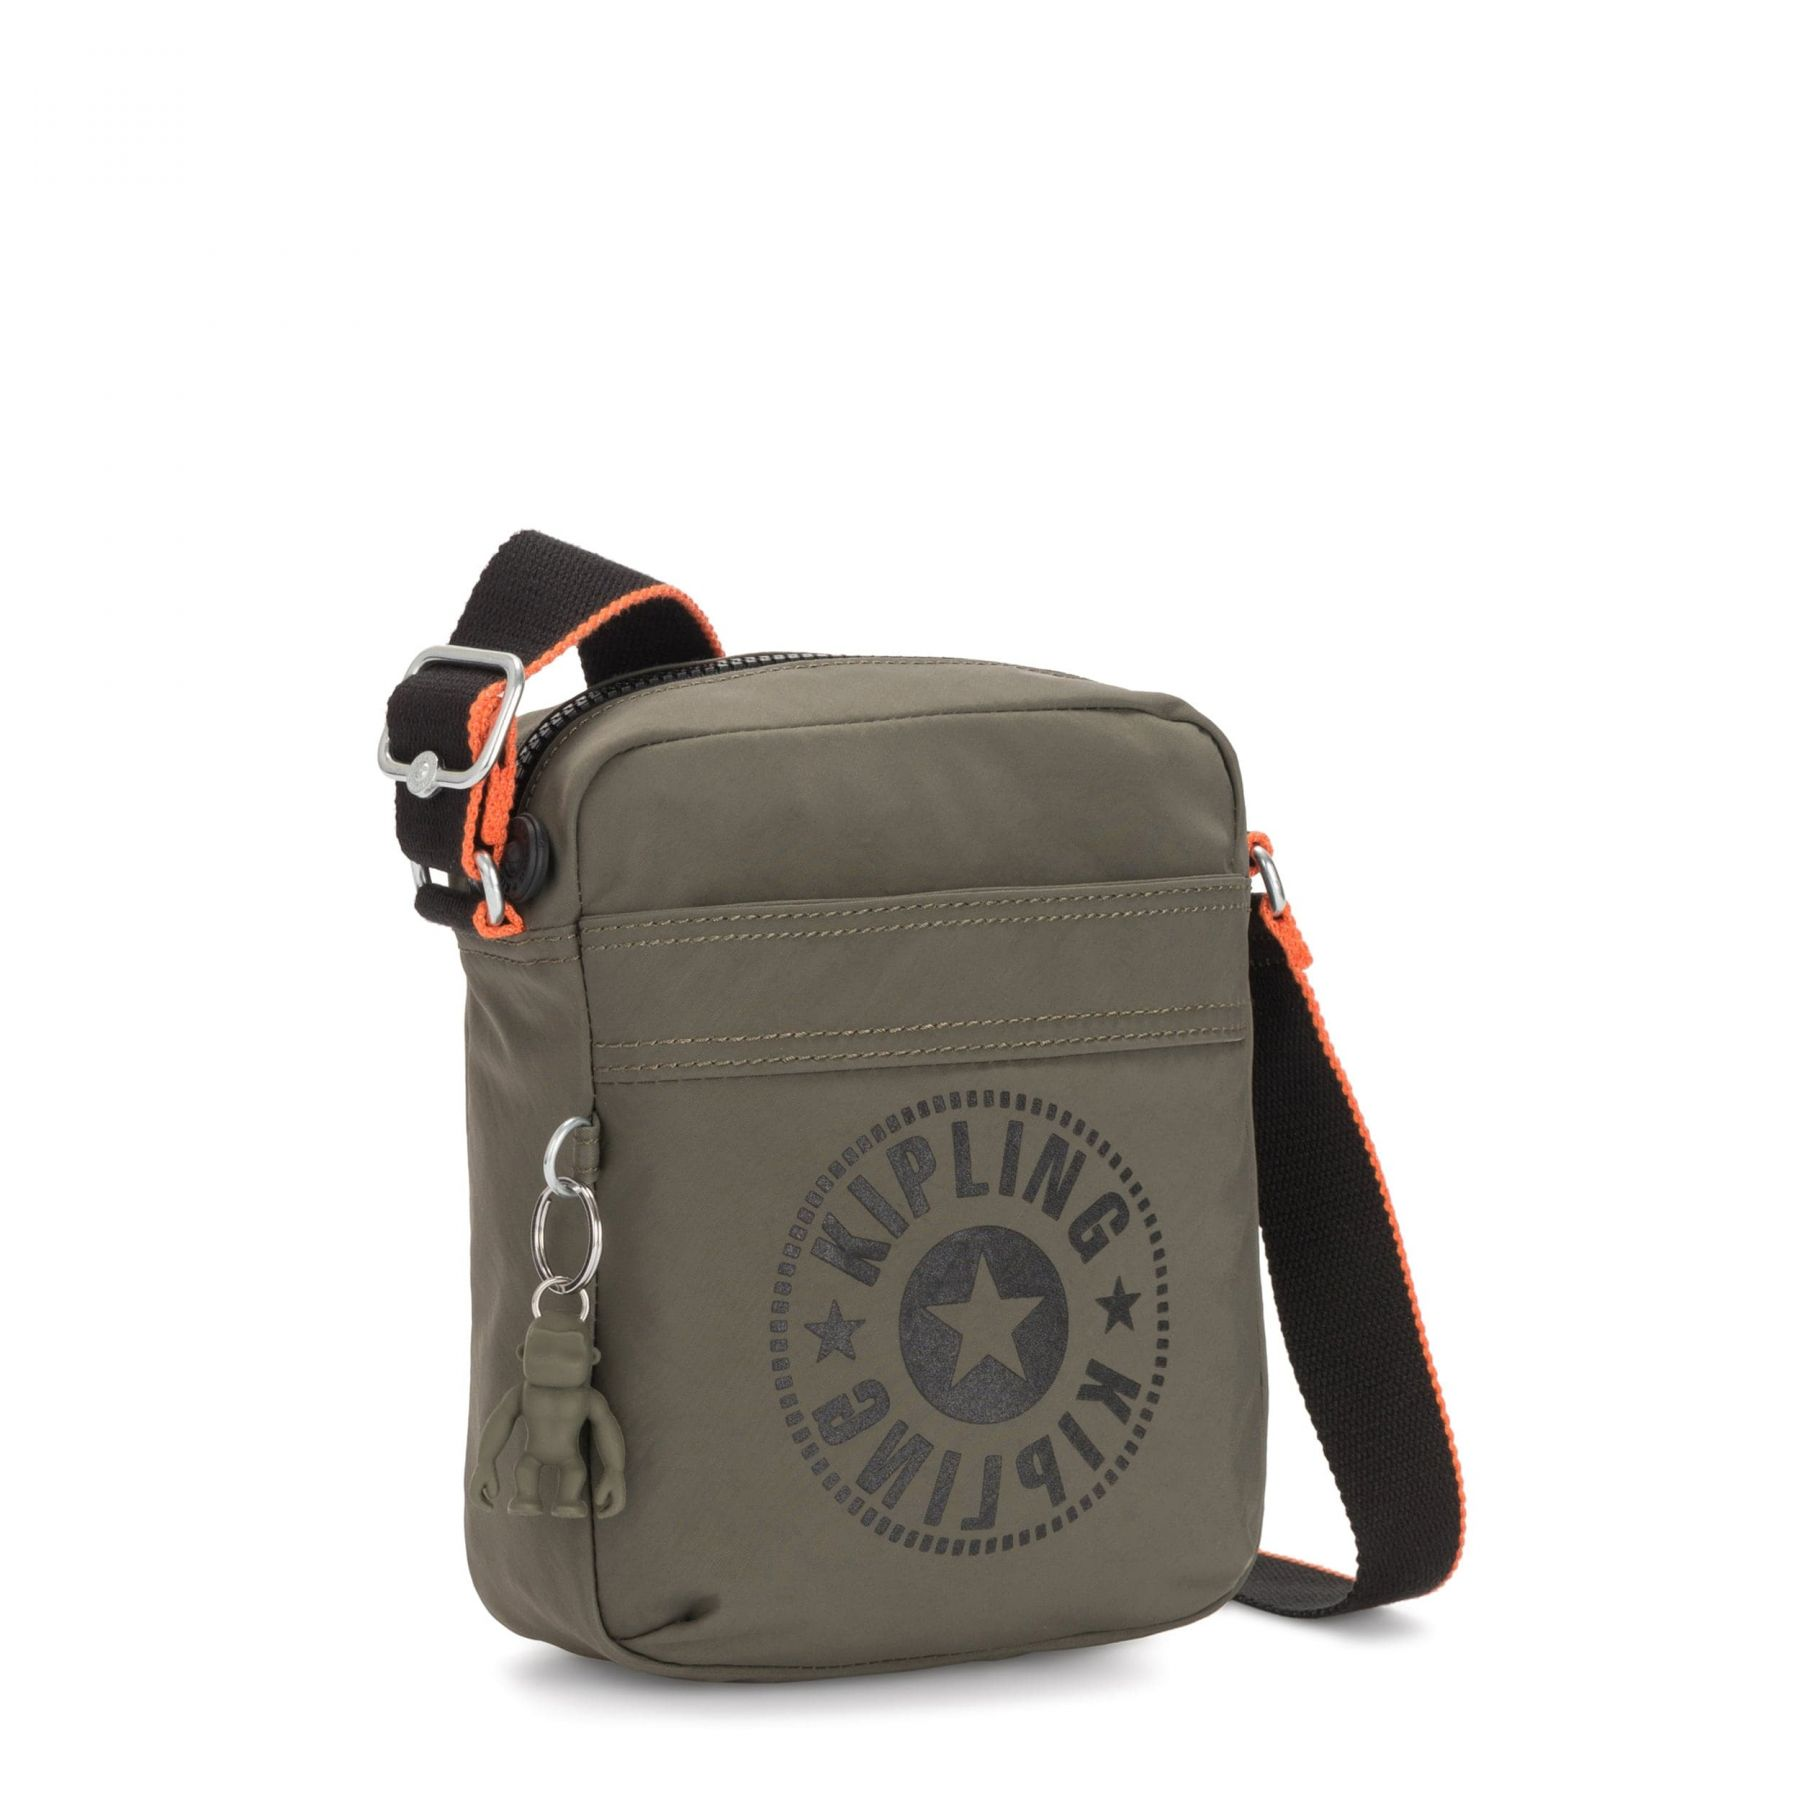 HISA Online Exclusives by Kipling - view 4